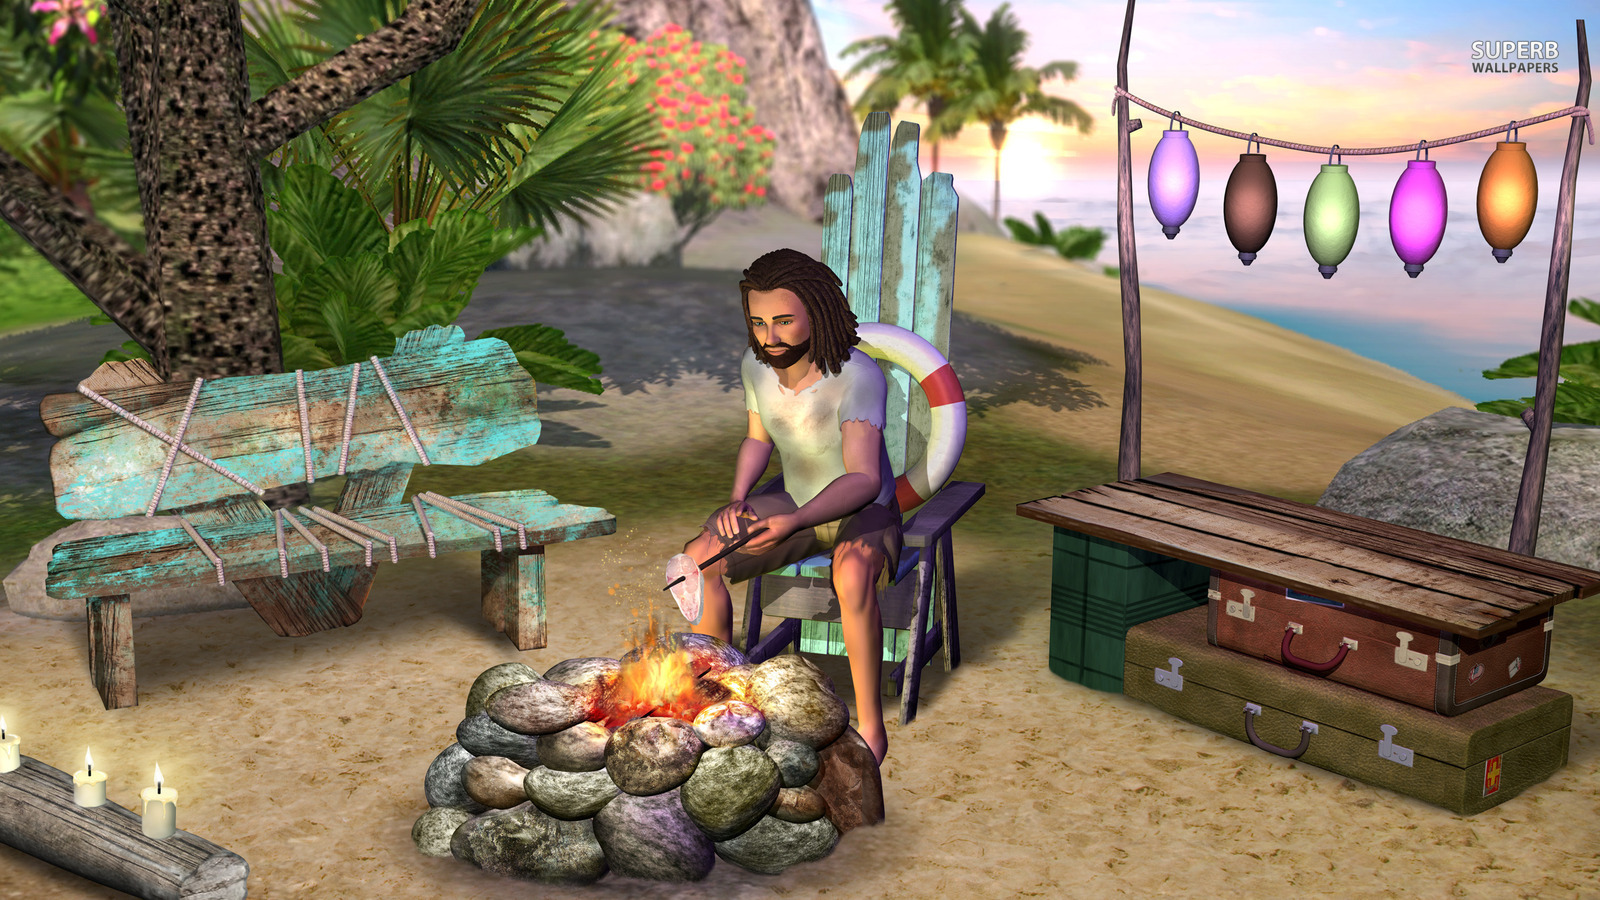 The Sims 3 The Sims 3 Wallpaper 38685028 Fanpop